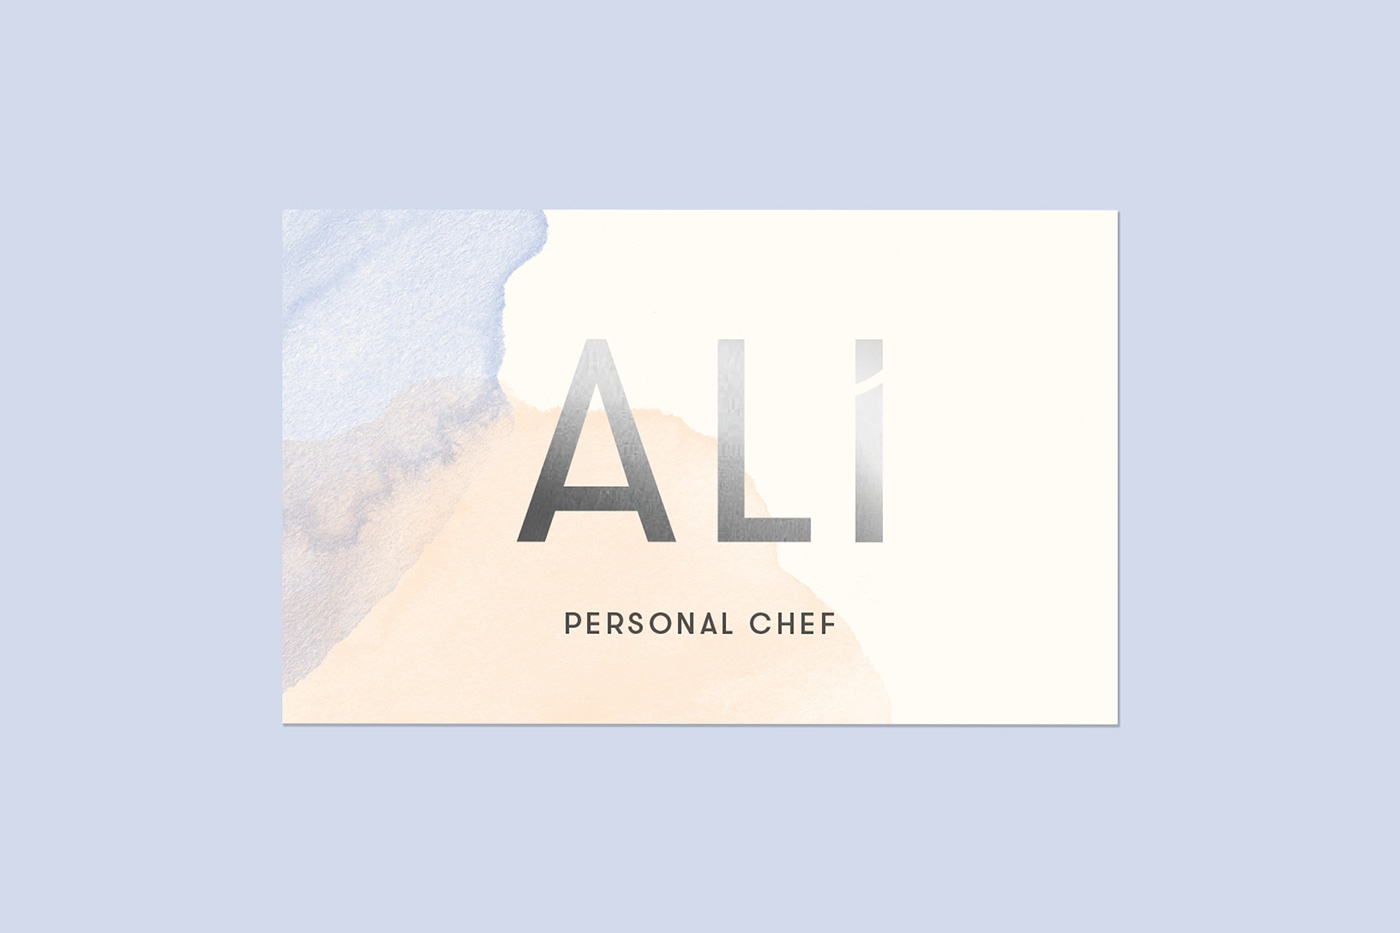 Personal Chef Business Cards on Behance